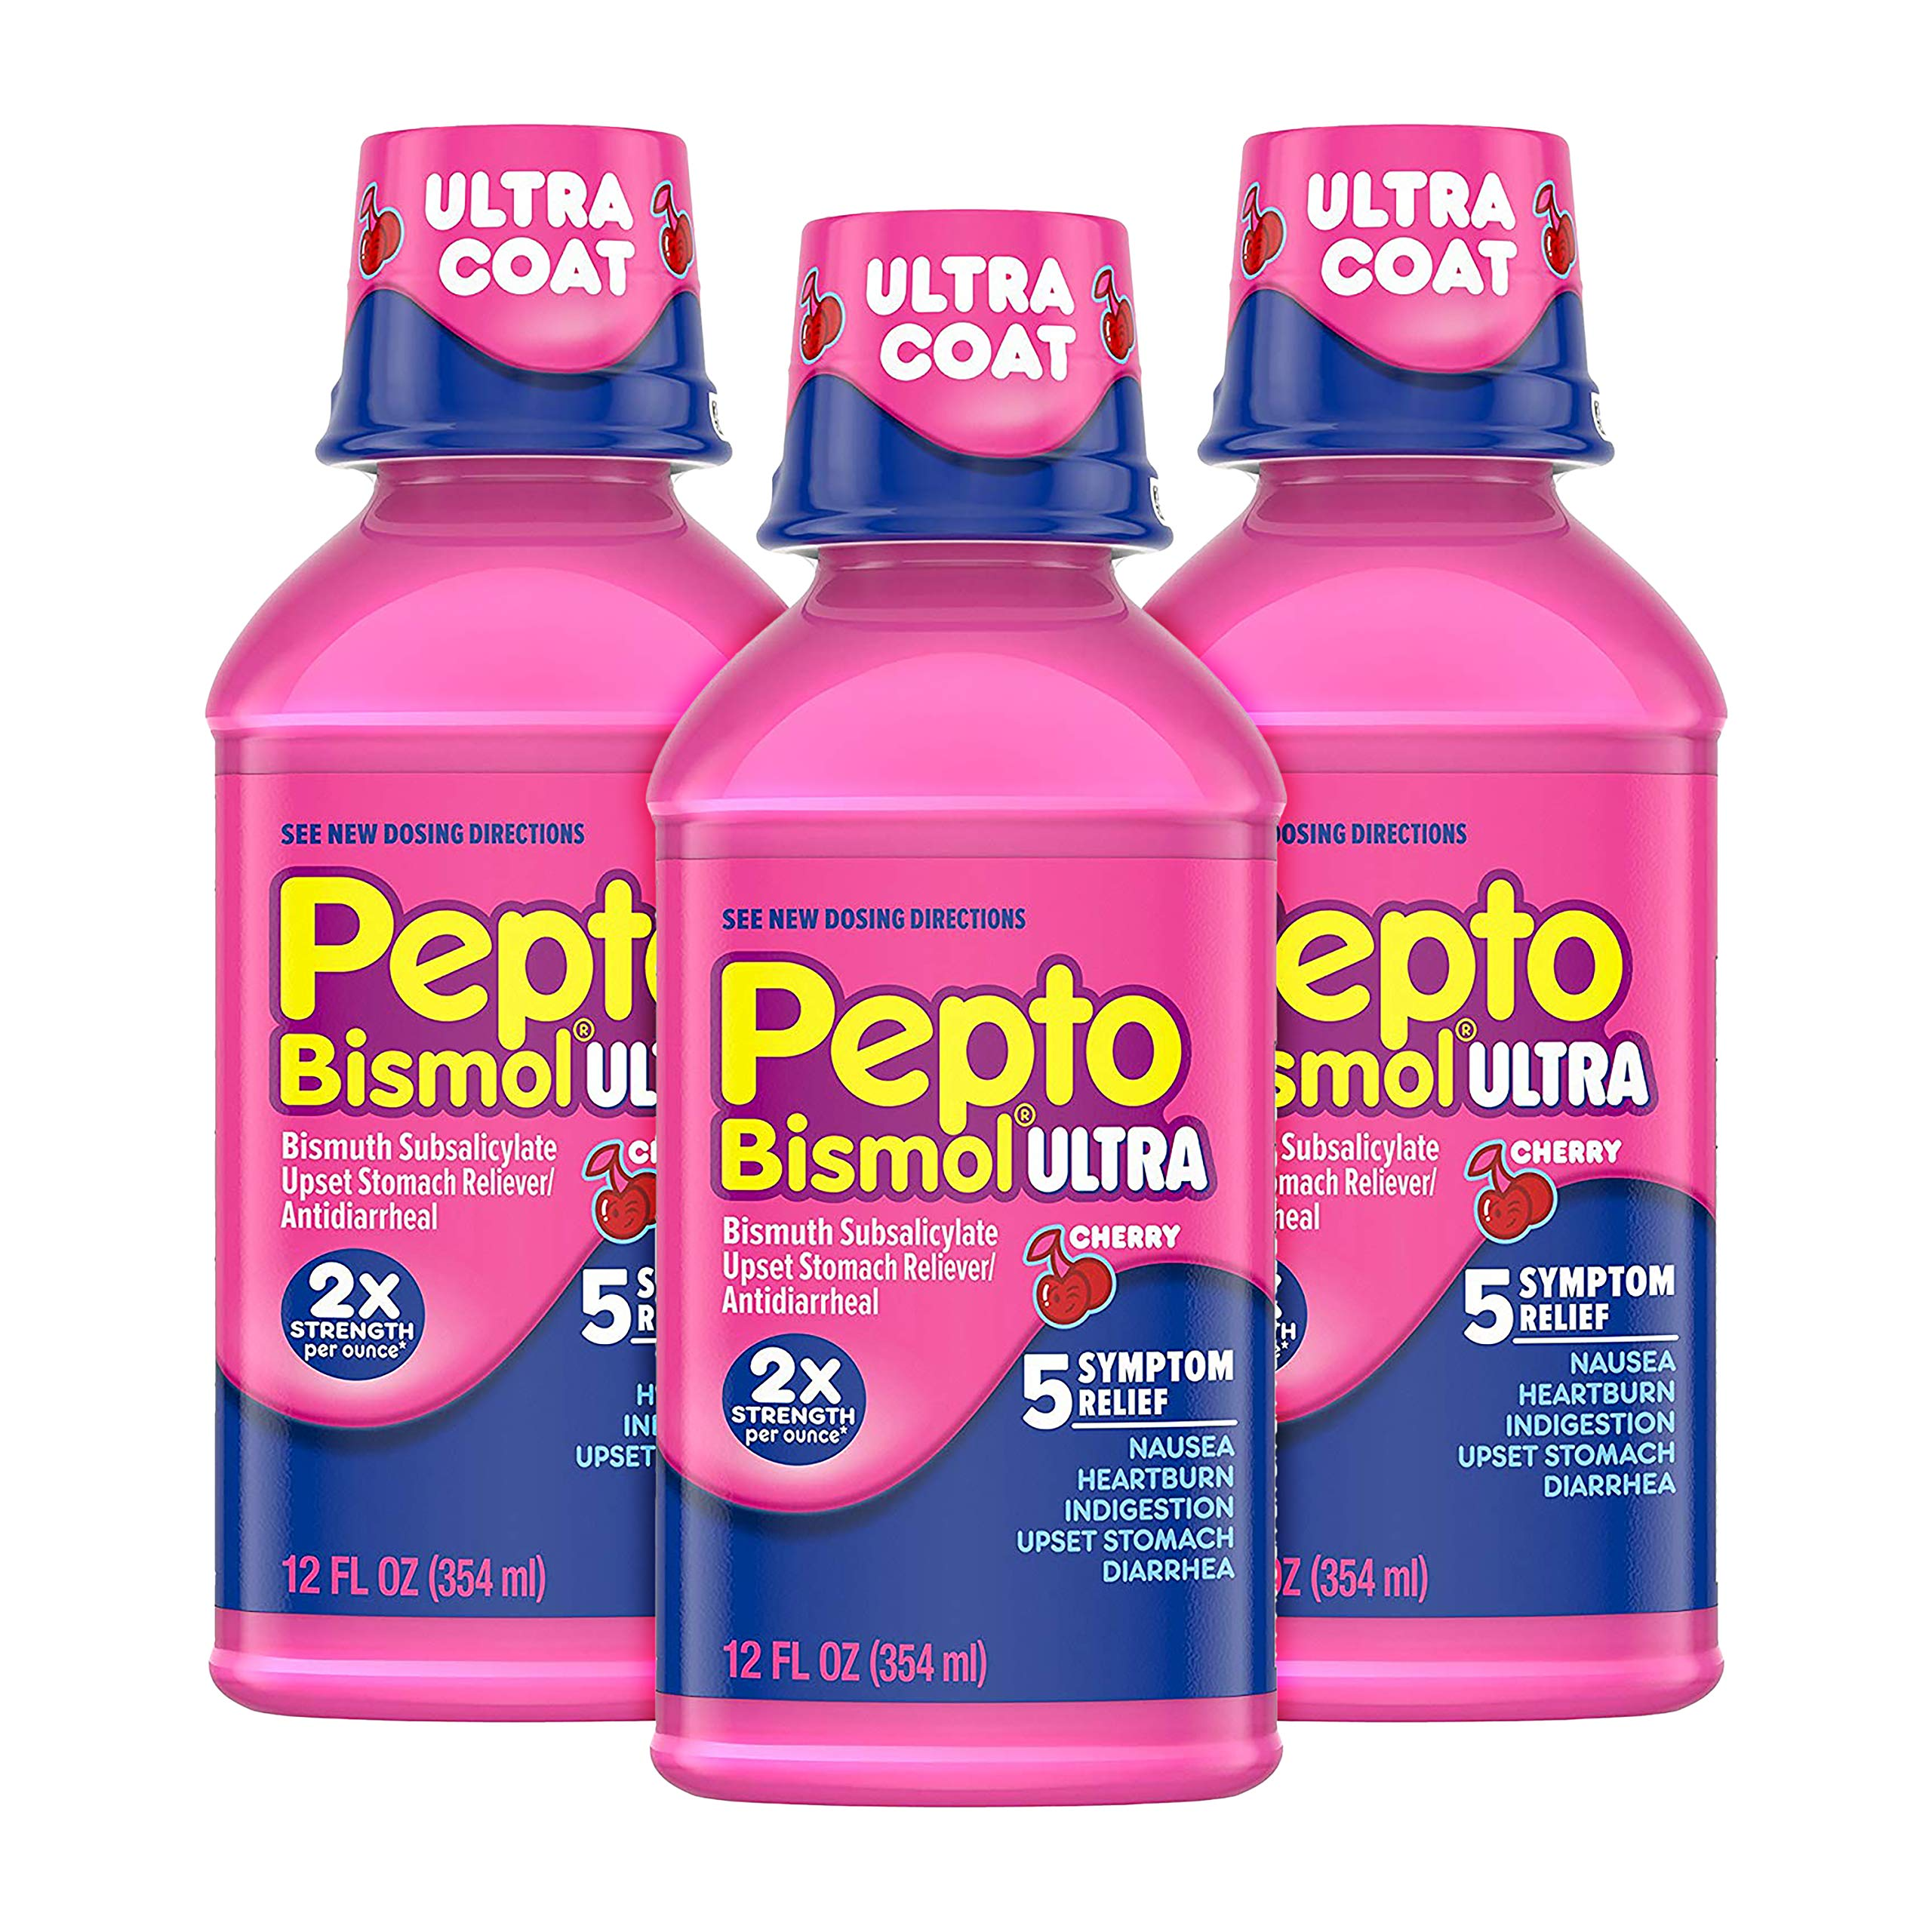 Pepto Bismol Liquid Ultra for Nausea, Heartburn, Indigestion, Upset Stomach, and Diarrhea Relief, Cherry Flavor 12 oz (Pack of 3)